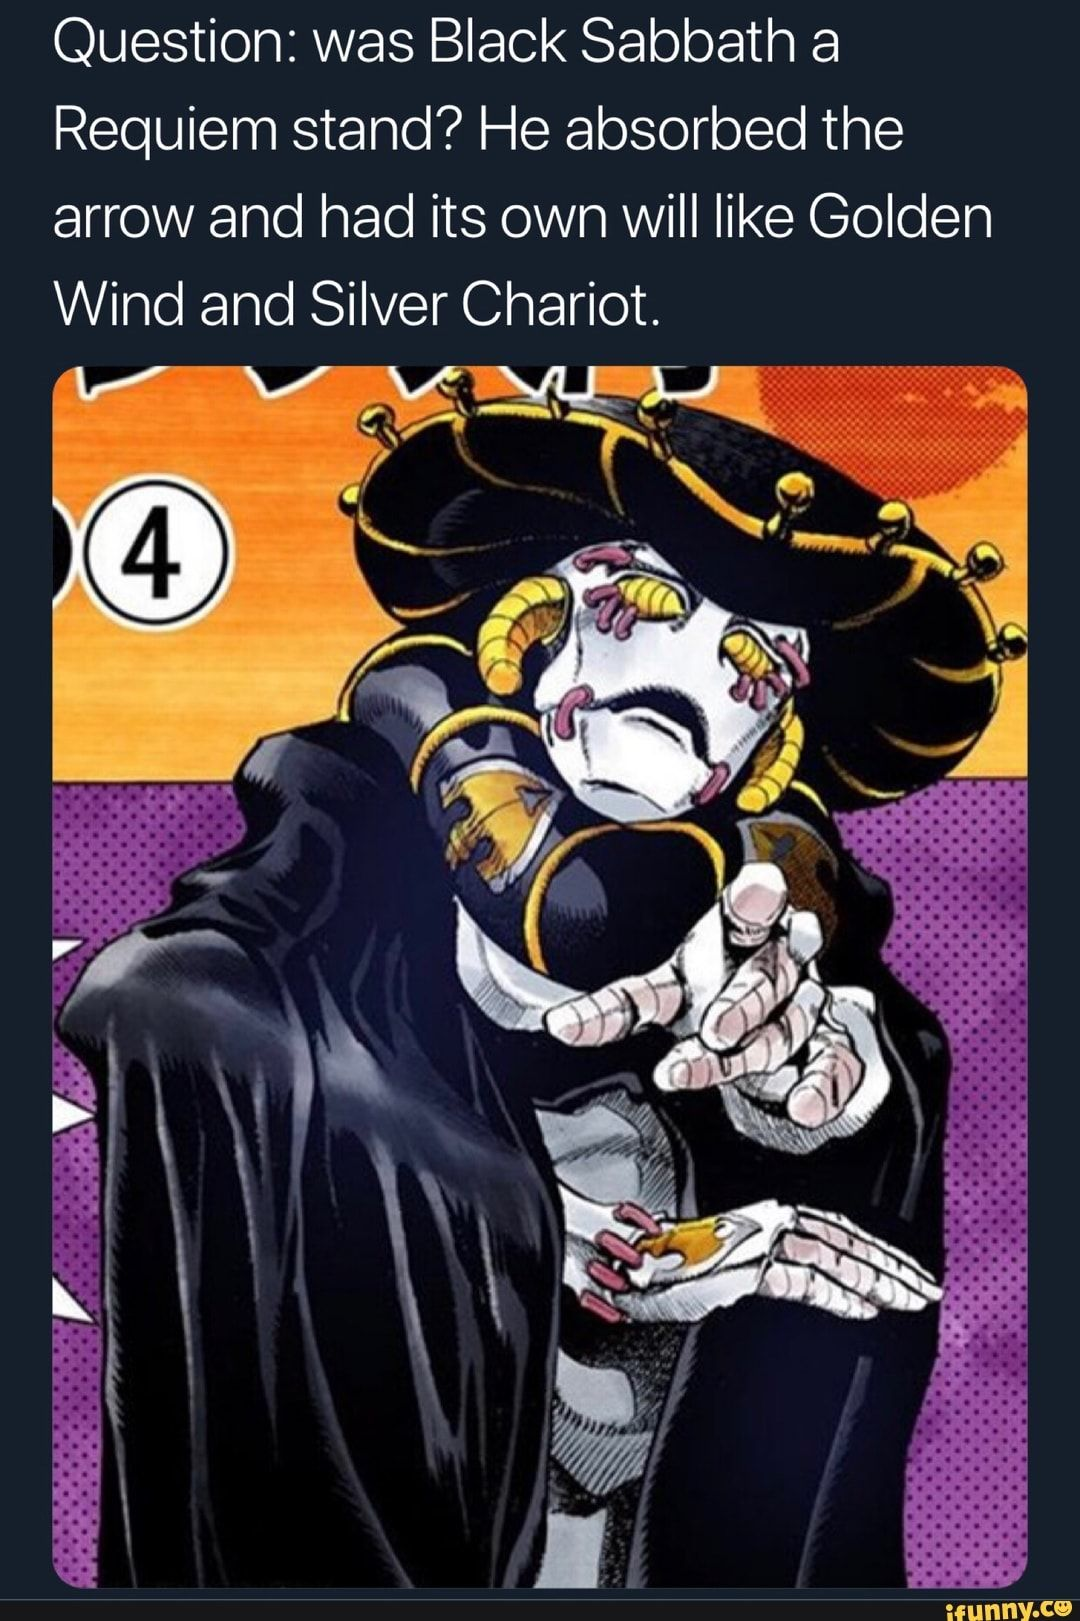 Question Was Black Sabbath A Requiem Stand He Absorbed The Arrow And Had Its Own Will Like Golden Wind And Silver Chariot Ifunny Requiem Stands Black Sabbath Jojo Bizzare Adventure Feel free to post your wallpapers on this thread and/or message me about it so i can update this post. black sabbath a requiem stand